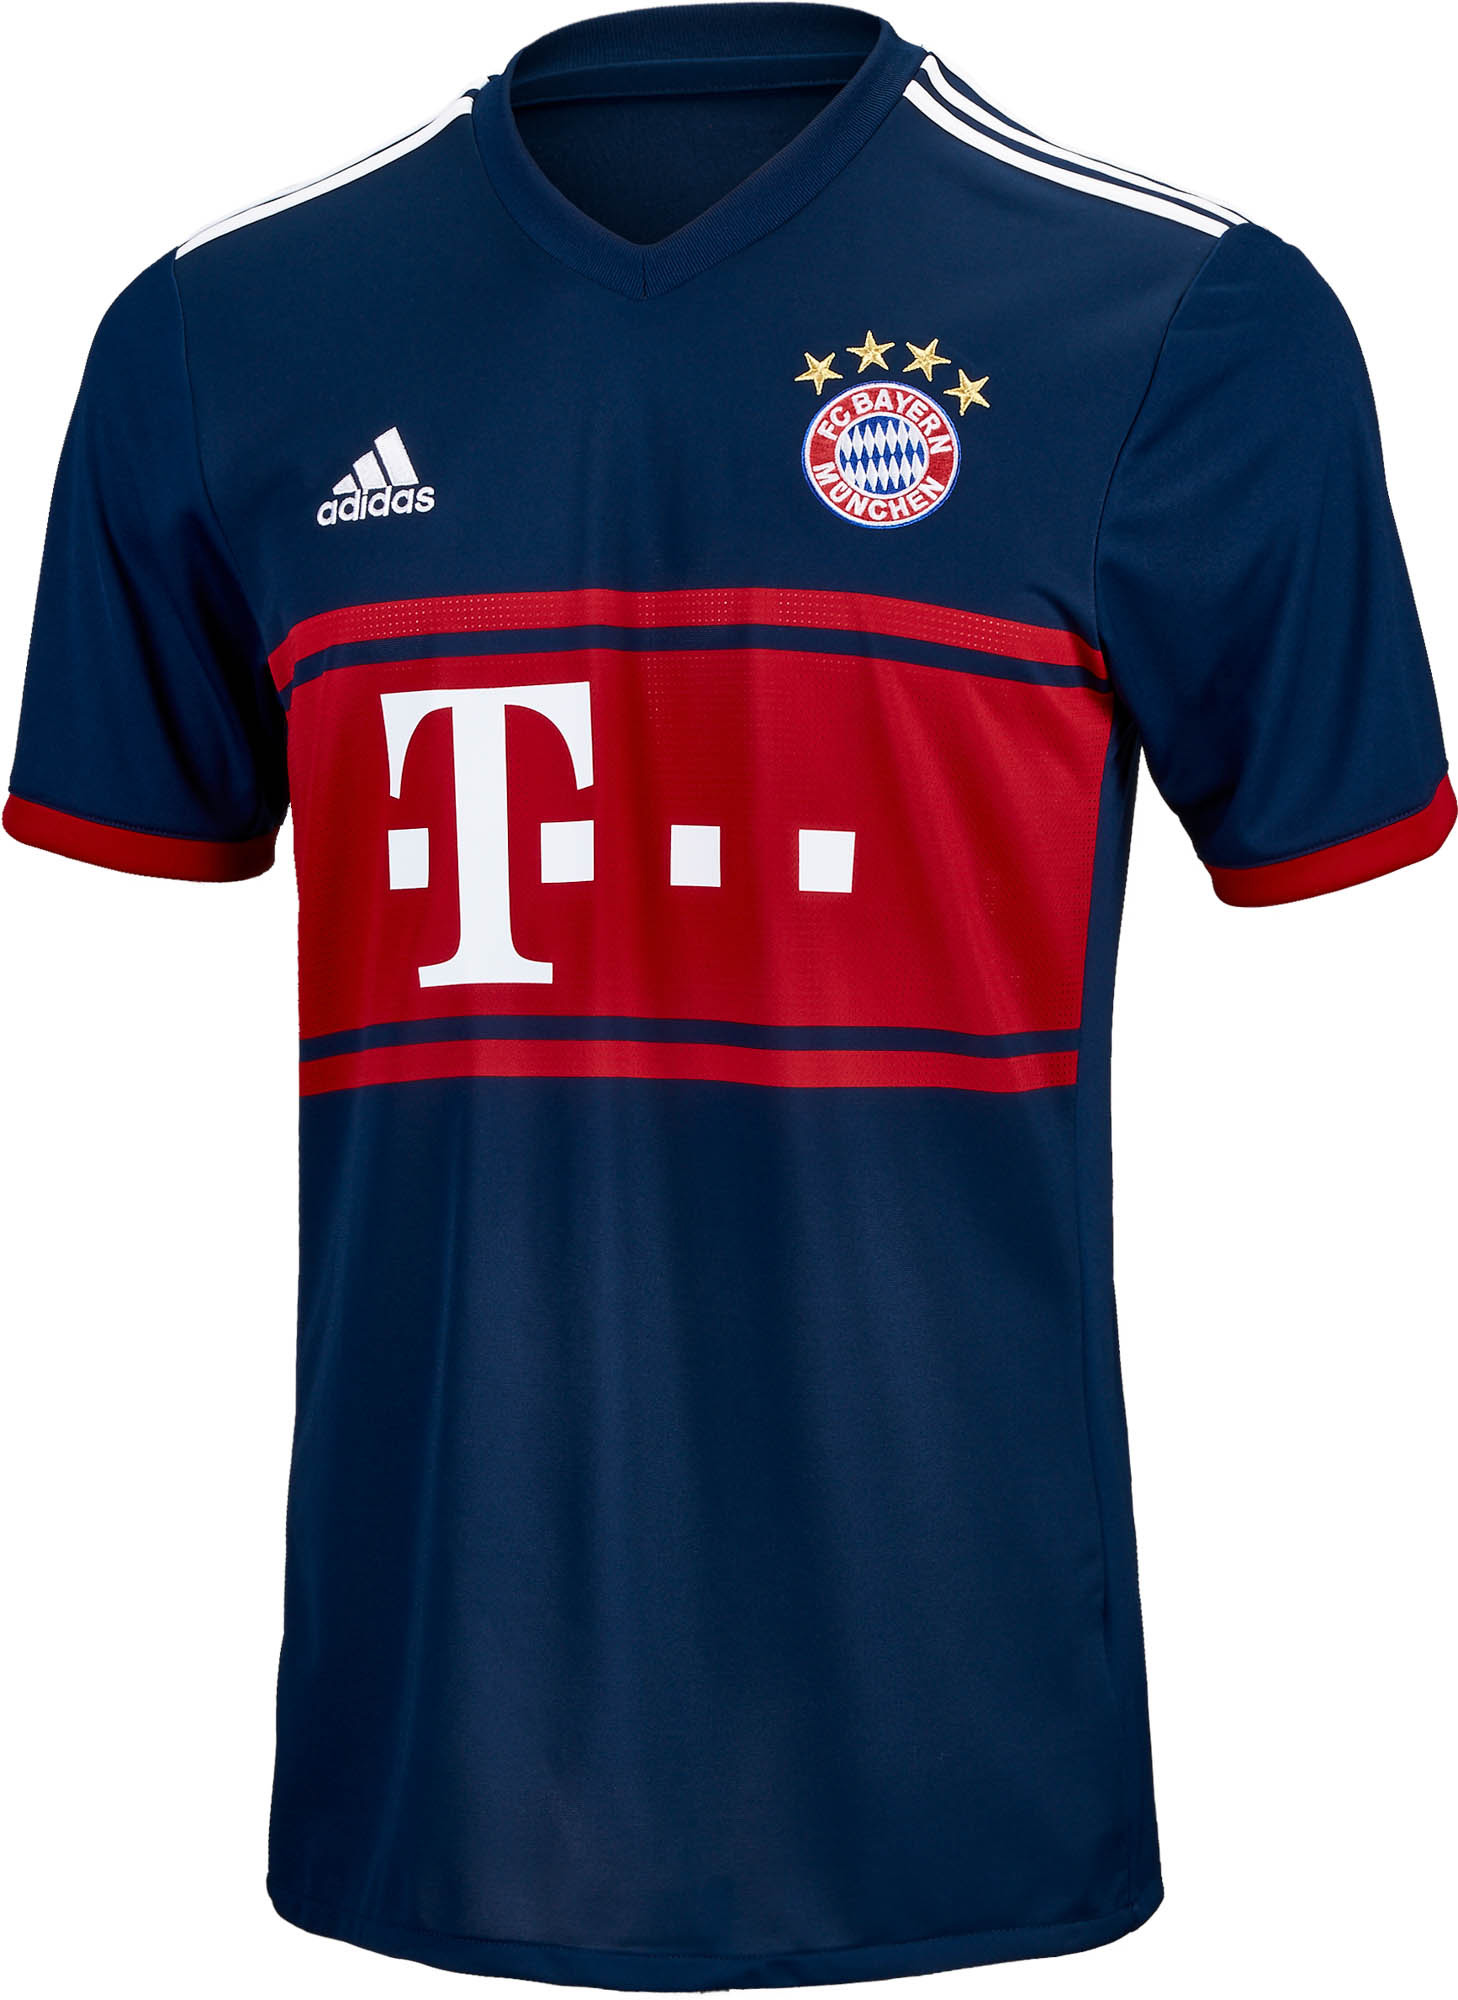 2017 18 adidas bayern munich away jersey. Black Bedroom Furniture Sets. Home Design Ideas